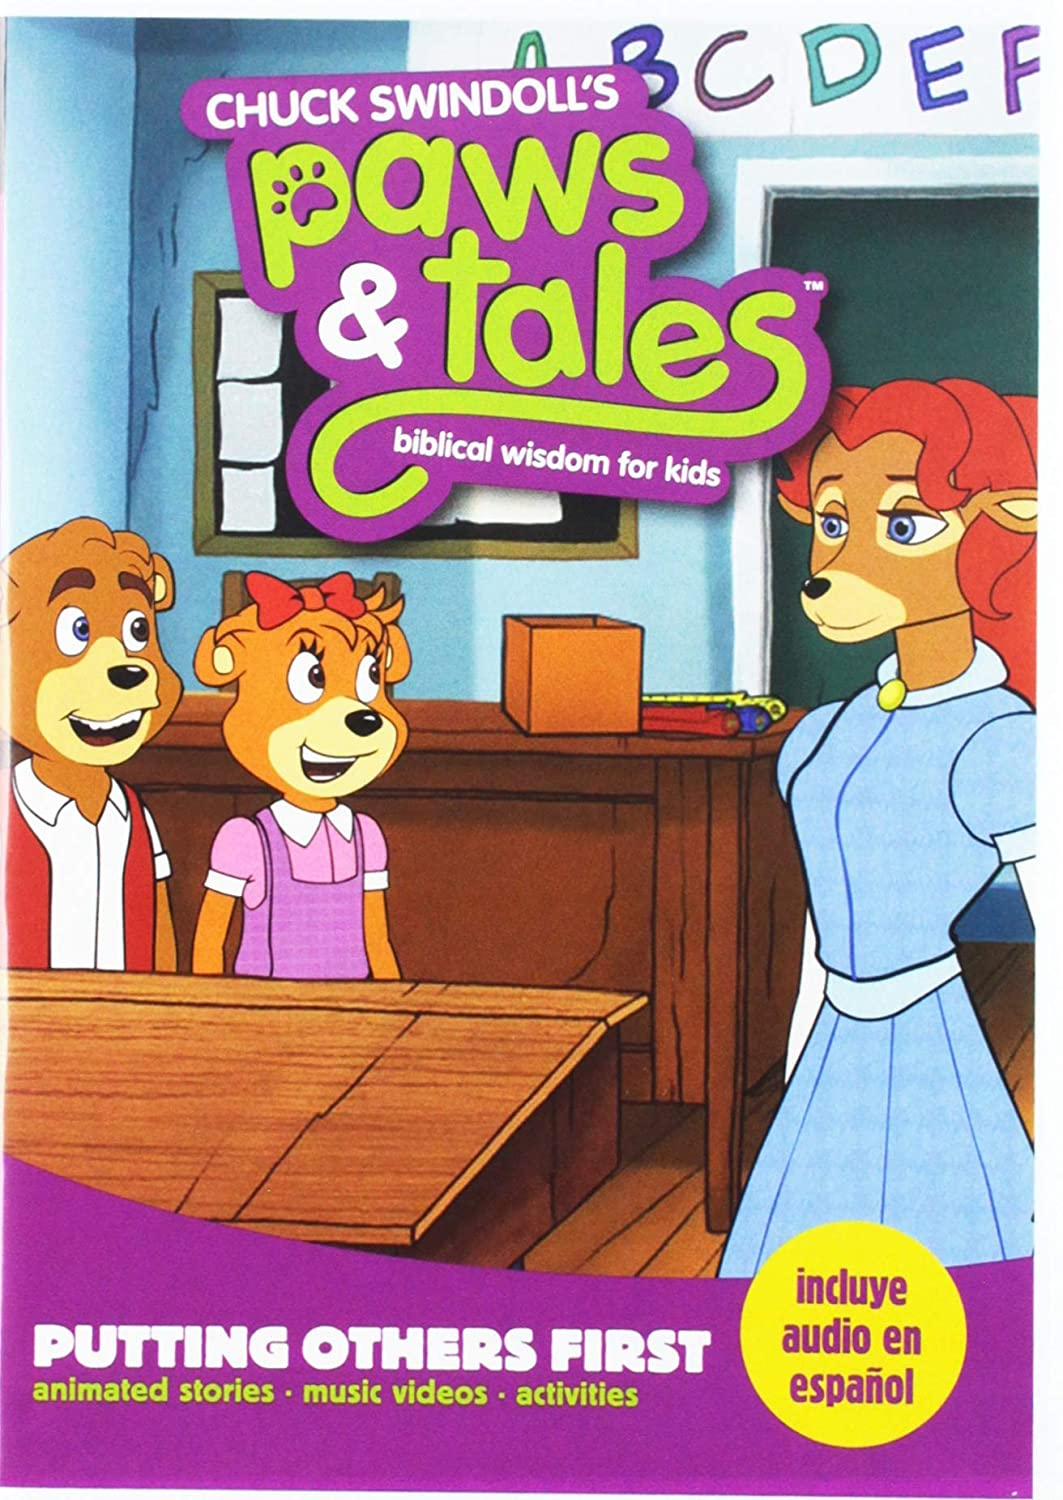 Chuck Swindoll's Paws NEW Tales Challenge the lowest price of Japan Biblical Kids: for Putting Wisdom